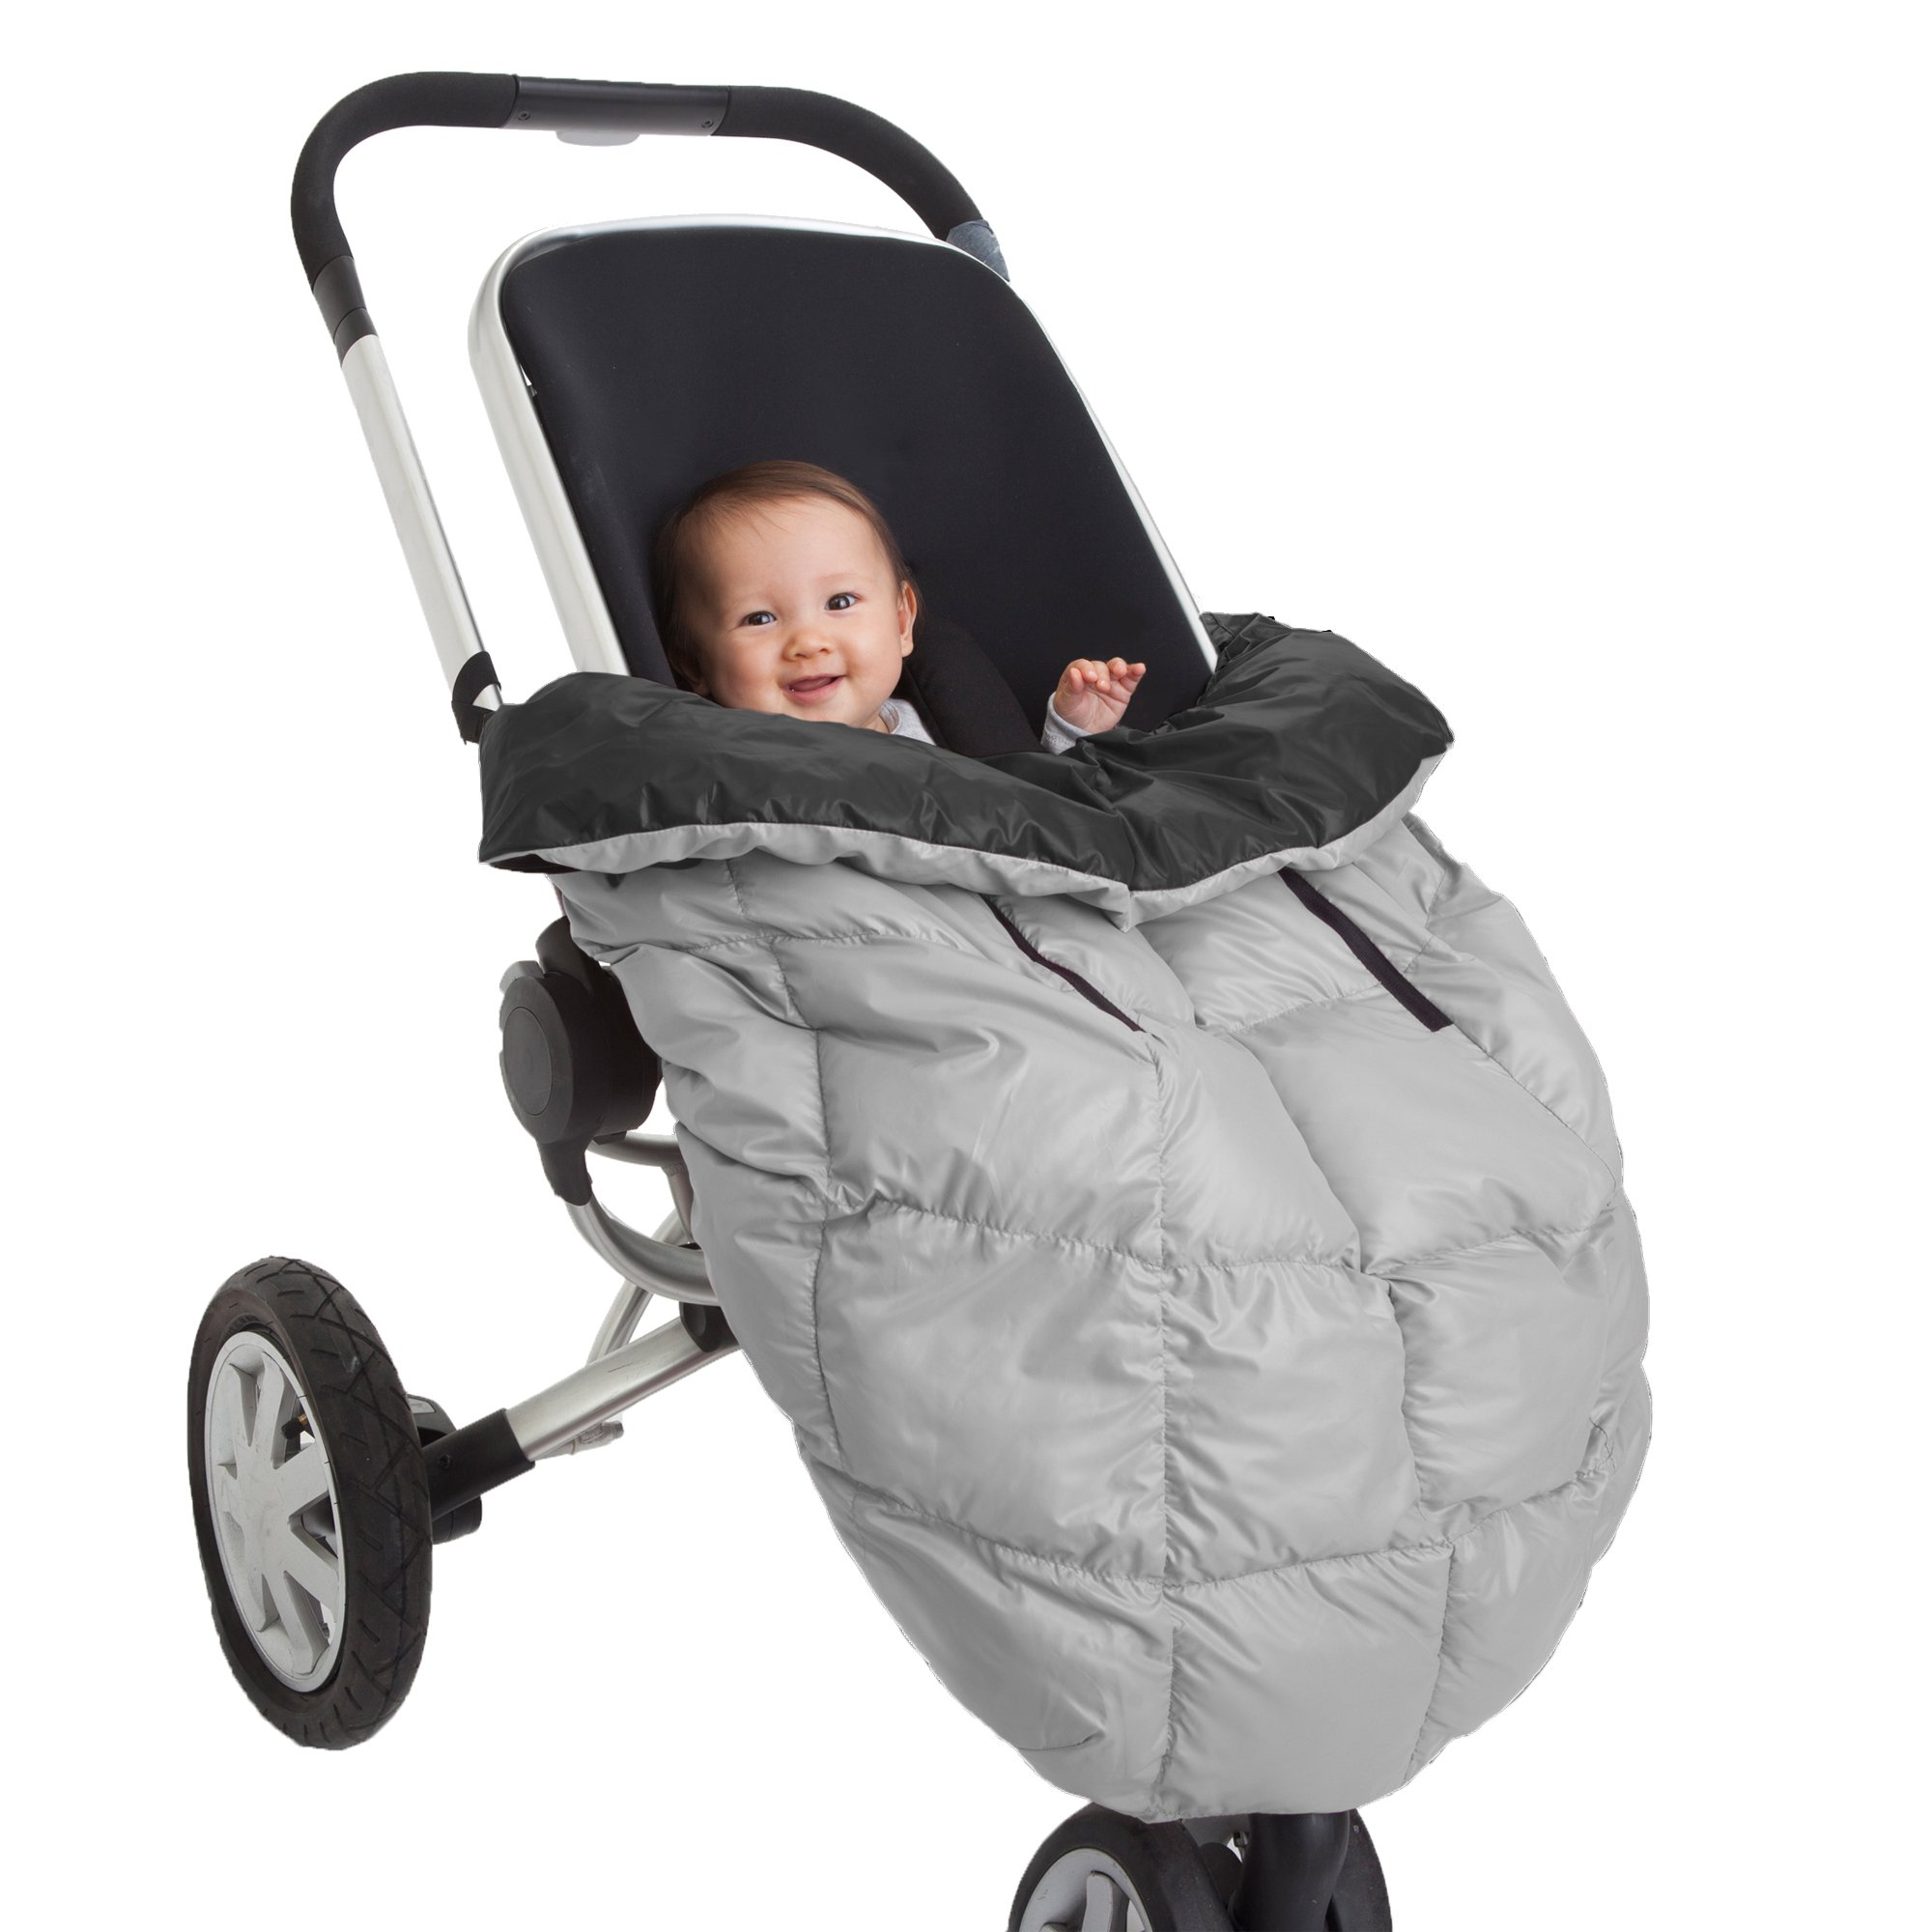 7AM Enfant, Cygnet Cover: 3-in-1 Cover for The Baby Carrier, Car-Seat and Stroller, Black/Gray by 7AM Enfant (Image #1)